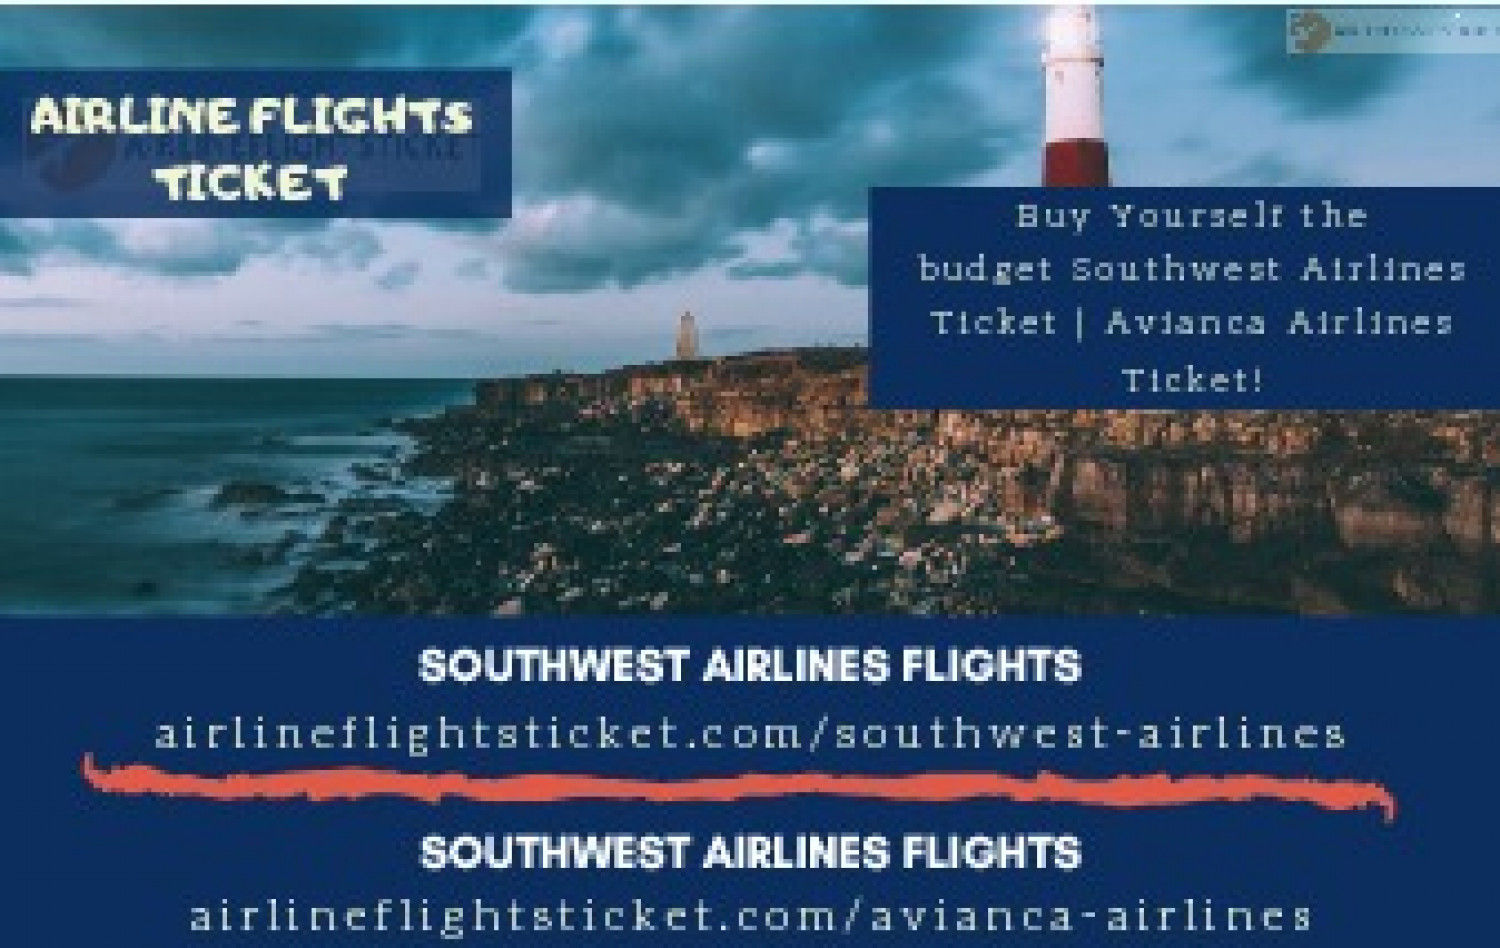 Buy Yourself the budget SouthwestSouthwest Airlines Flights Airlines Ticket | Avianca Airlines Ticket!